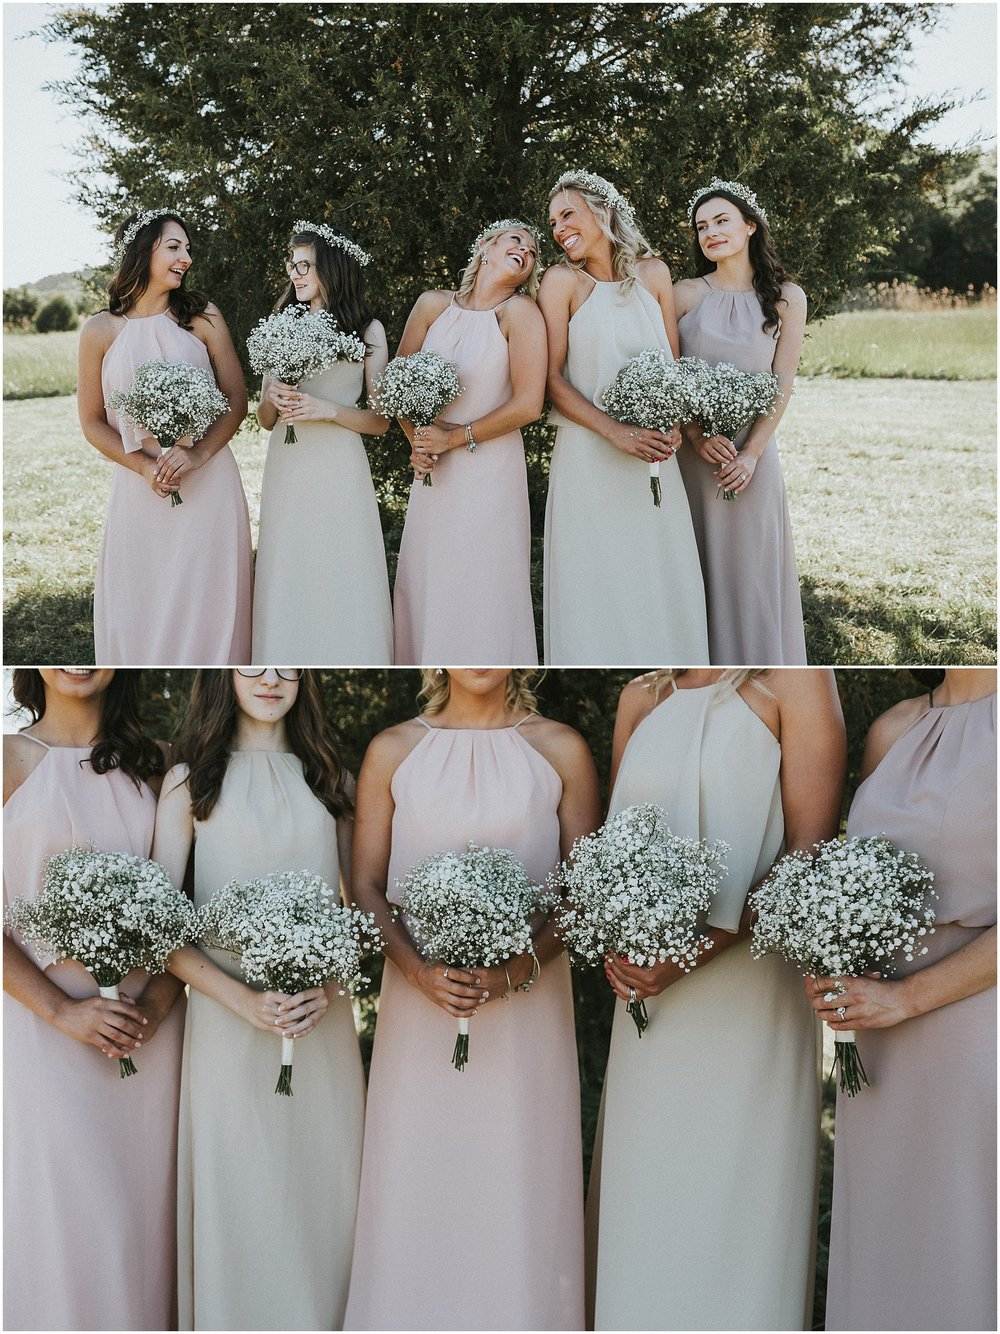 Pastel colored Bridesmaid dresses with bouquets of baby's breathe